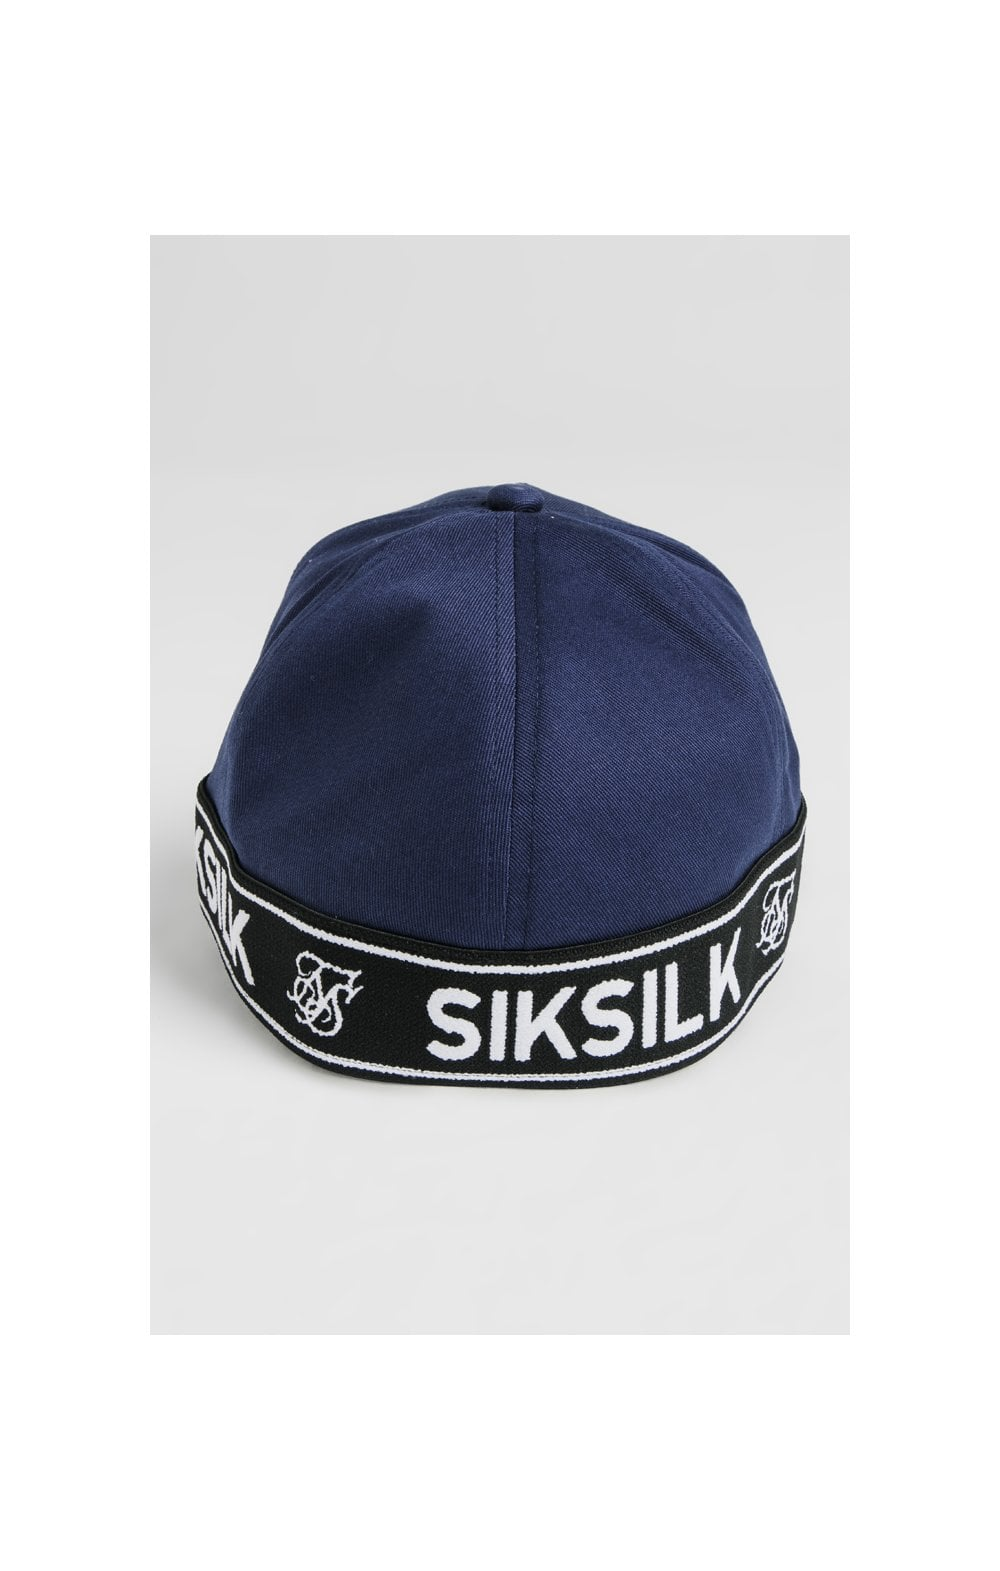 SikSilk Stretch Fit Full Trucker - Navy (7)